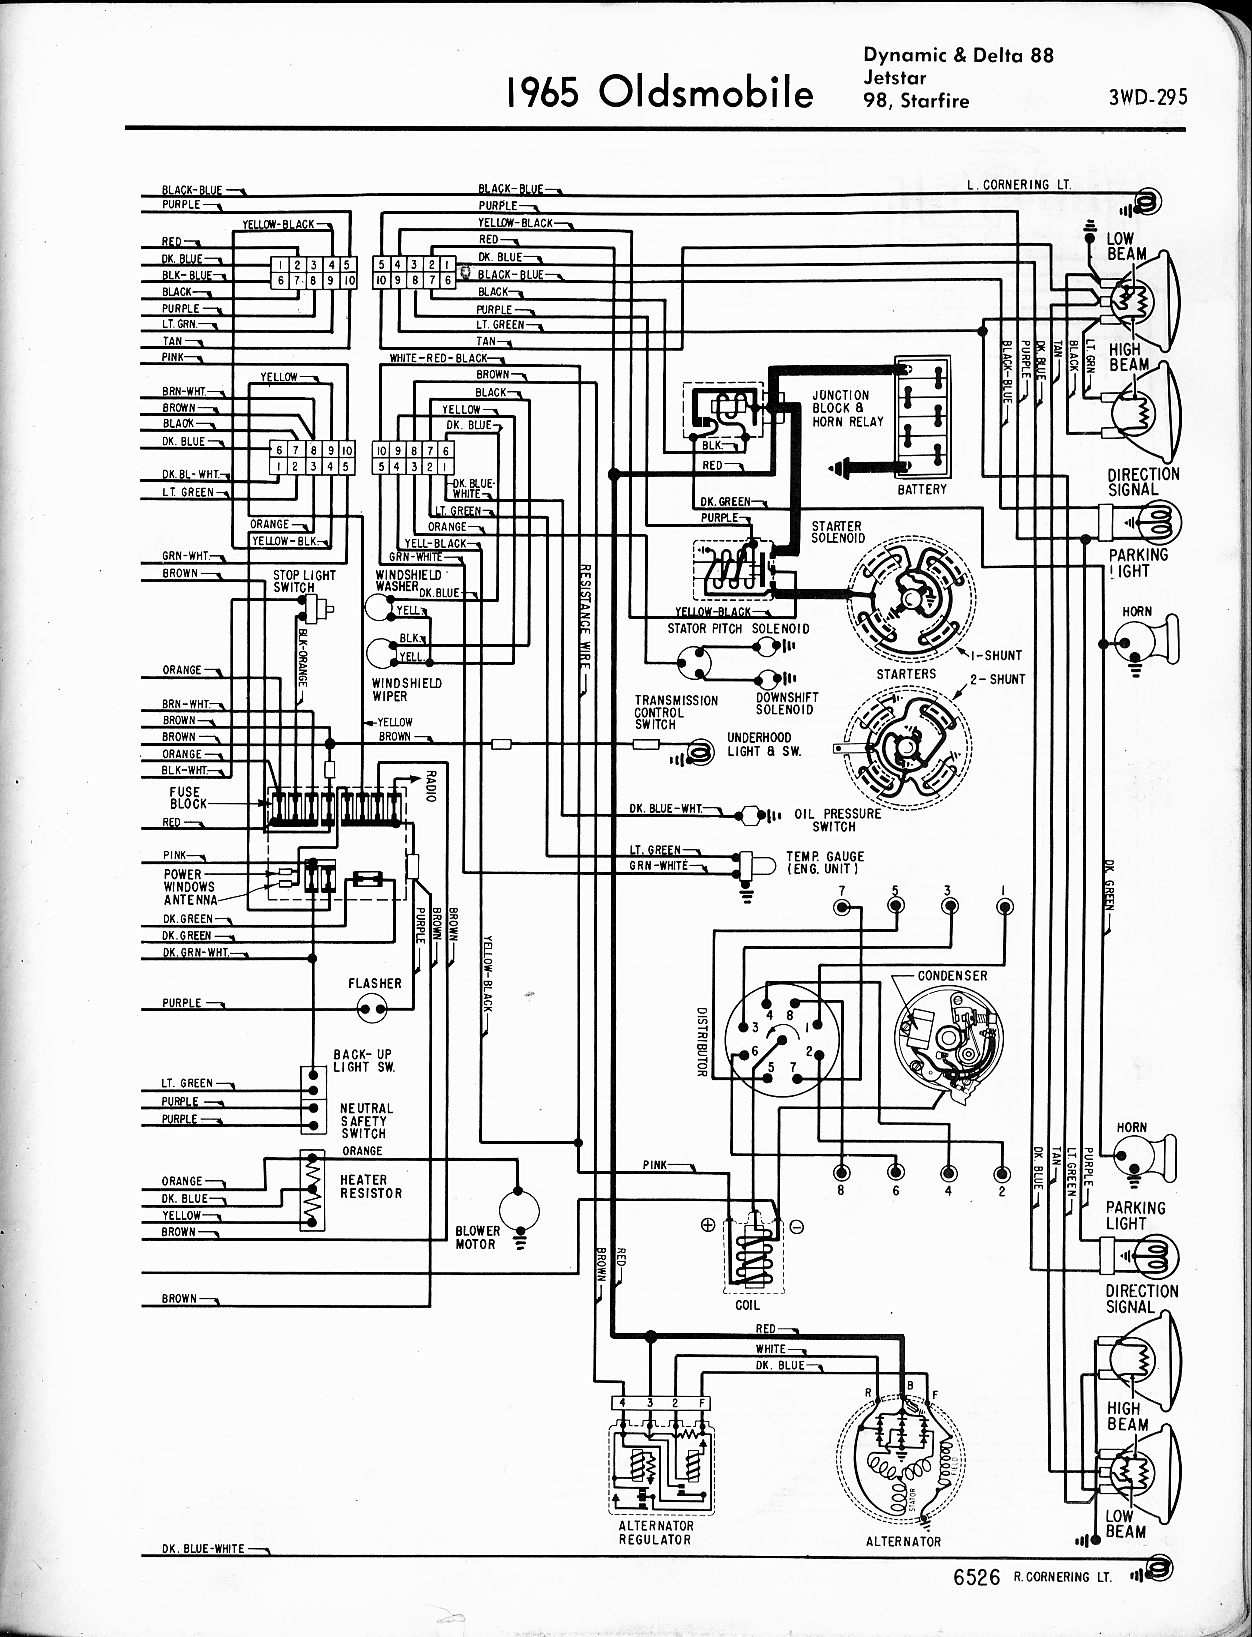 MWire5765 295 charging circuit diagram for the 1955 oldsmobile all models simple